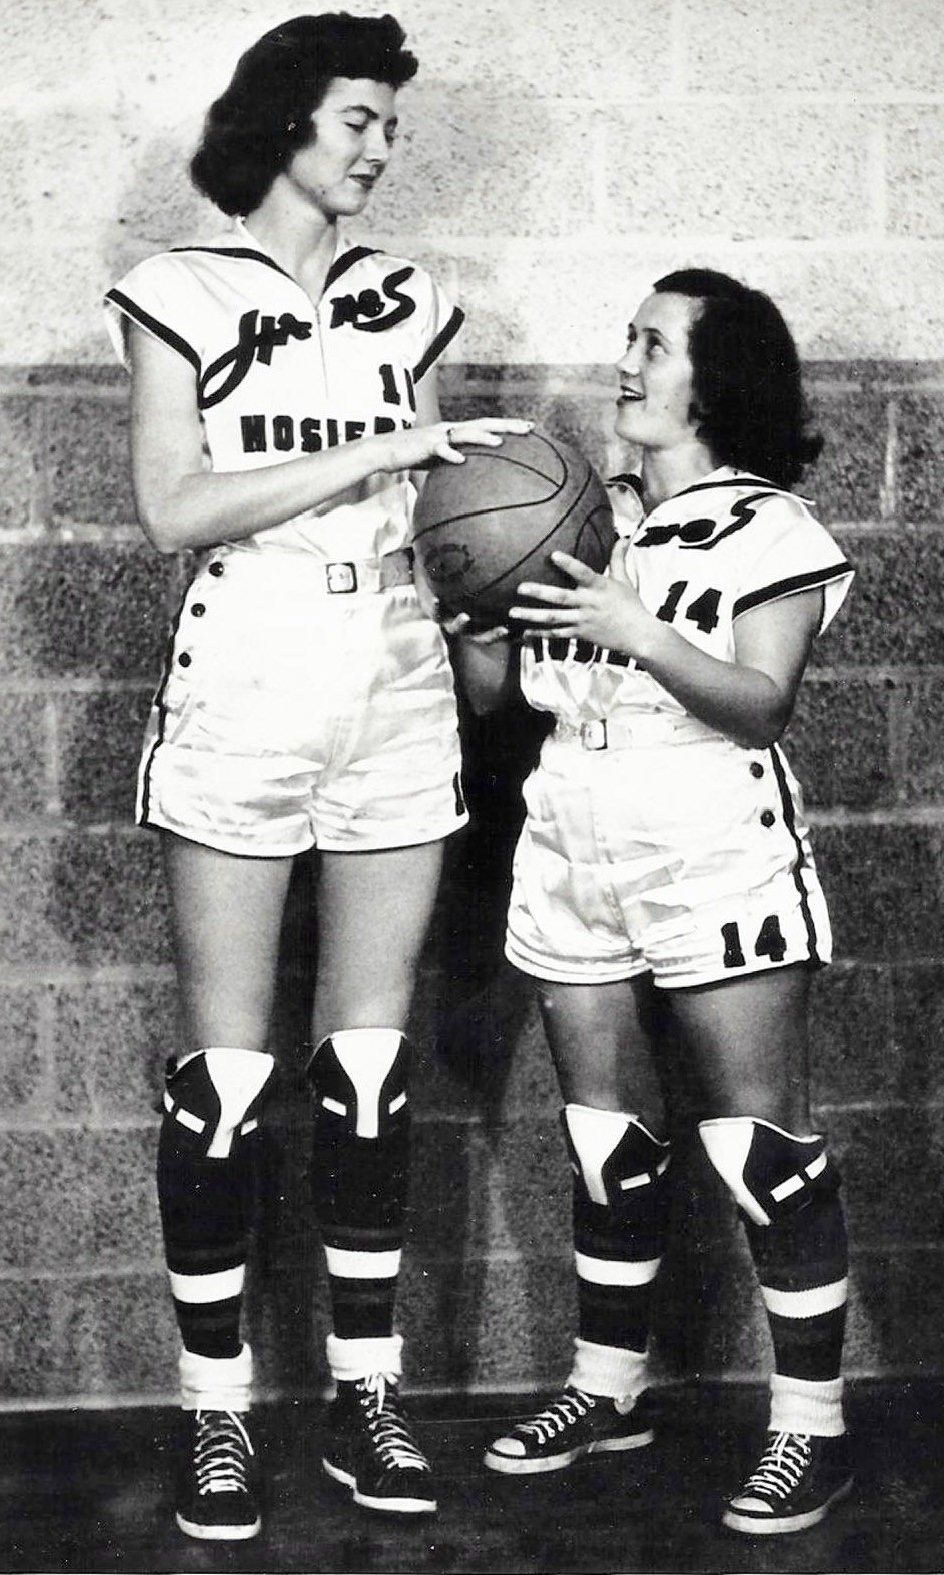 1950 basketball uniforms for girls ) Athletic women